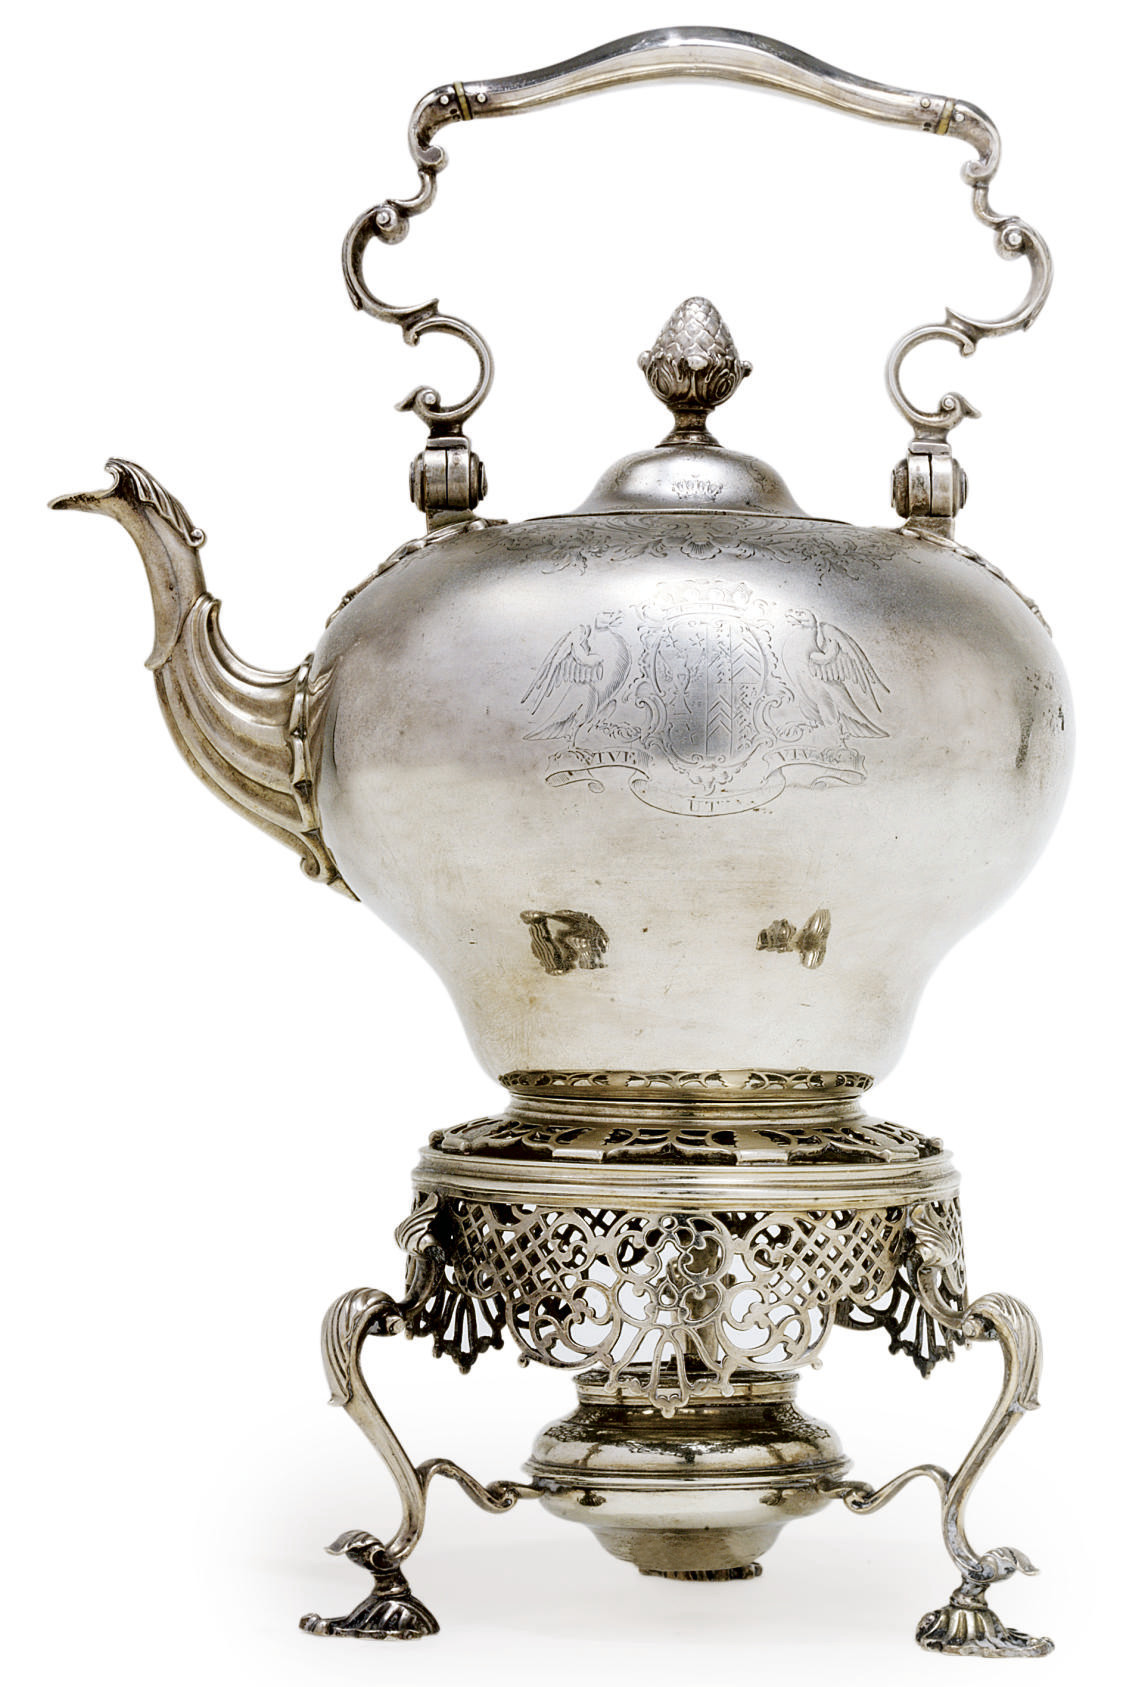 A GEORGE II SILVER TEA KETTLE-ON-STAND